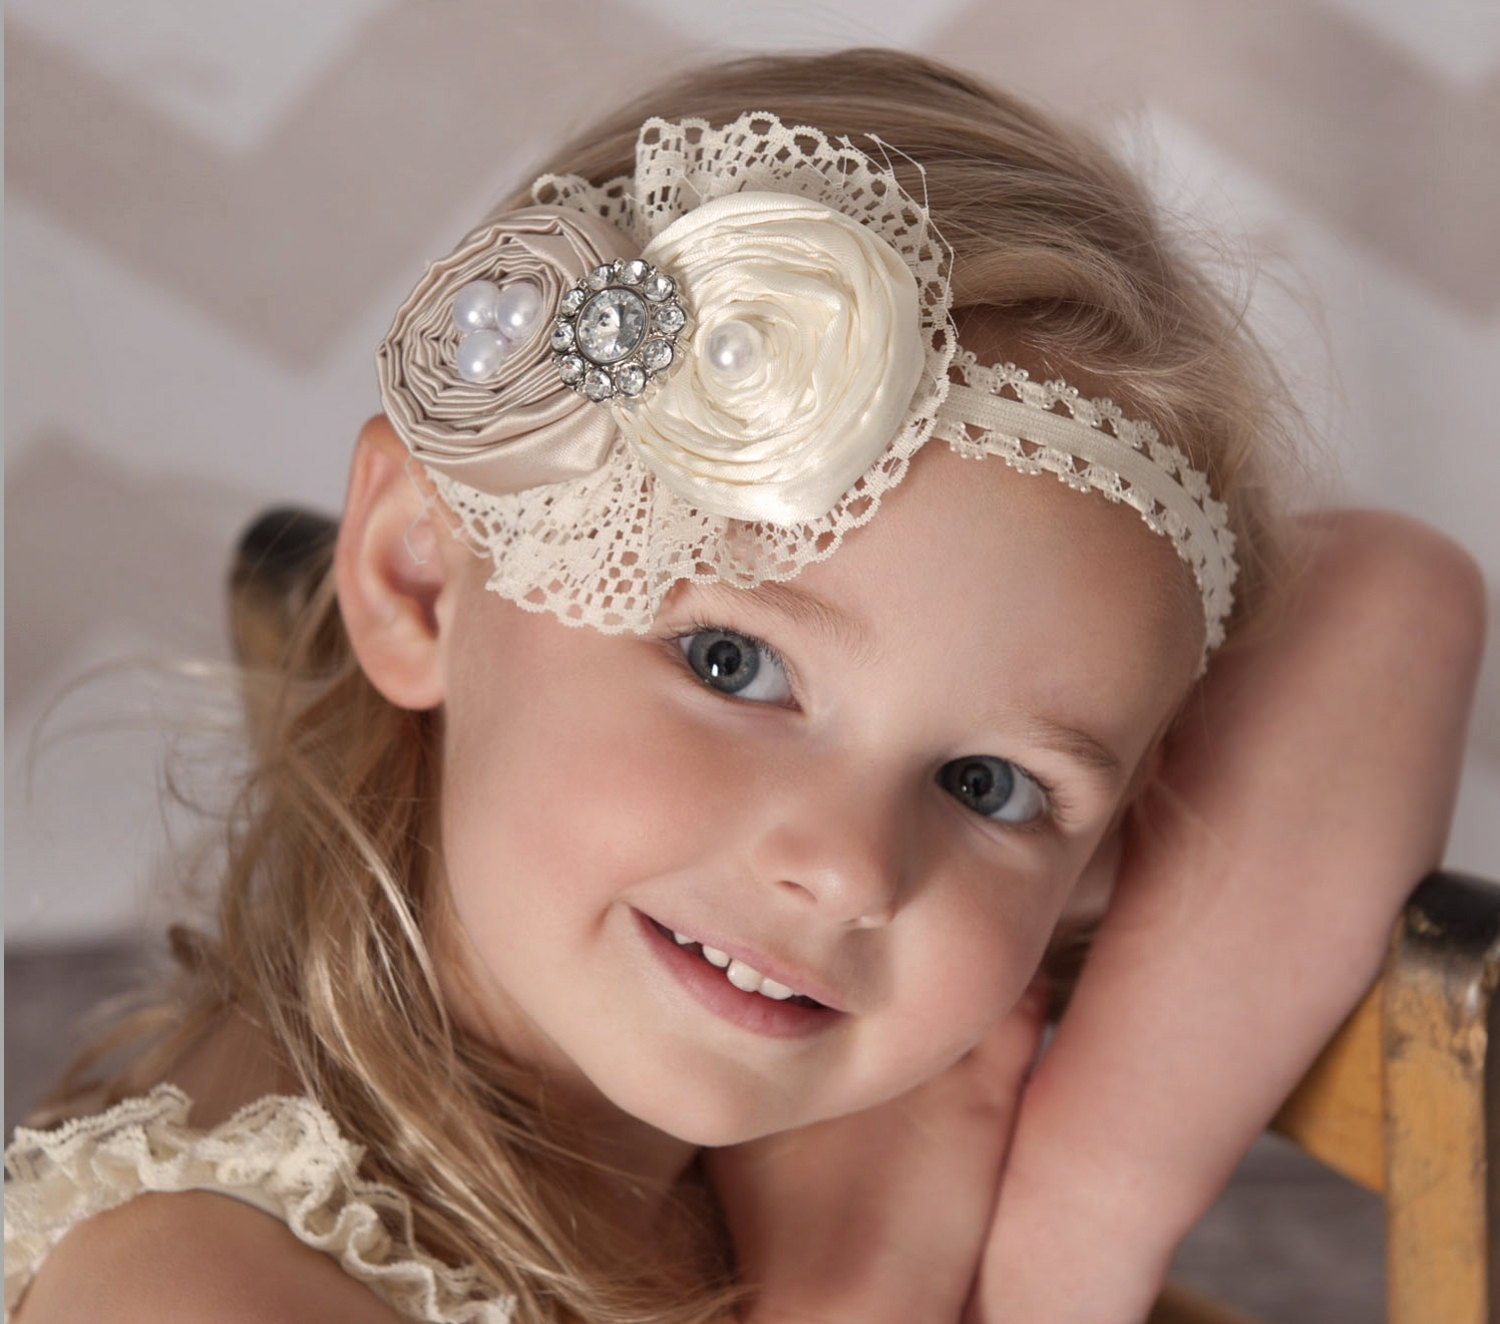 girl headbands flower headband for women wedding hair accessories Miugle Baby Girl Flower Headbands Turban Head Wraps Infant Girls Hair Band Headwear. by Miugle. $ $ 8 99 Prime. FREE Shipping on eligible orders. out of 5 stars Product Features Miugle baby headbands go with any kind of clothing.